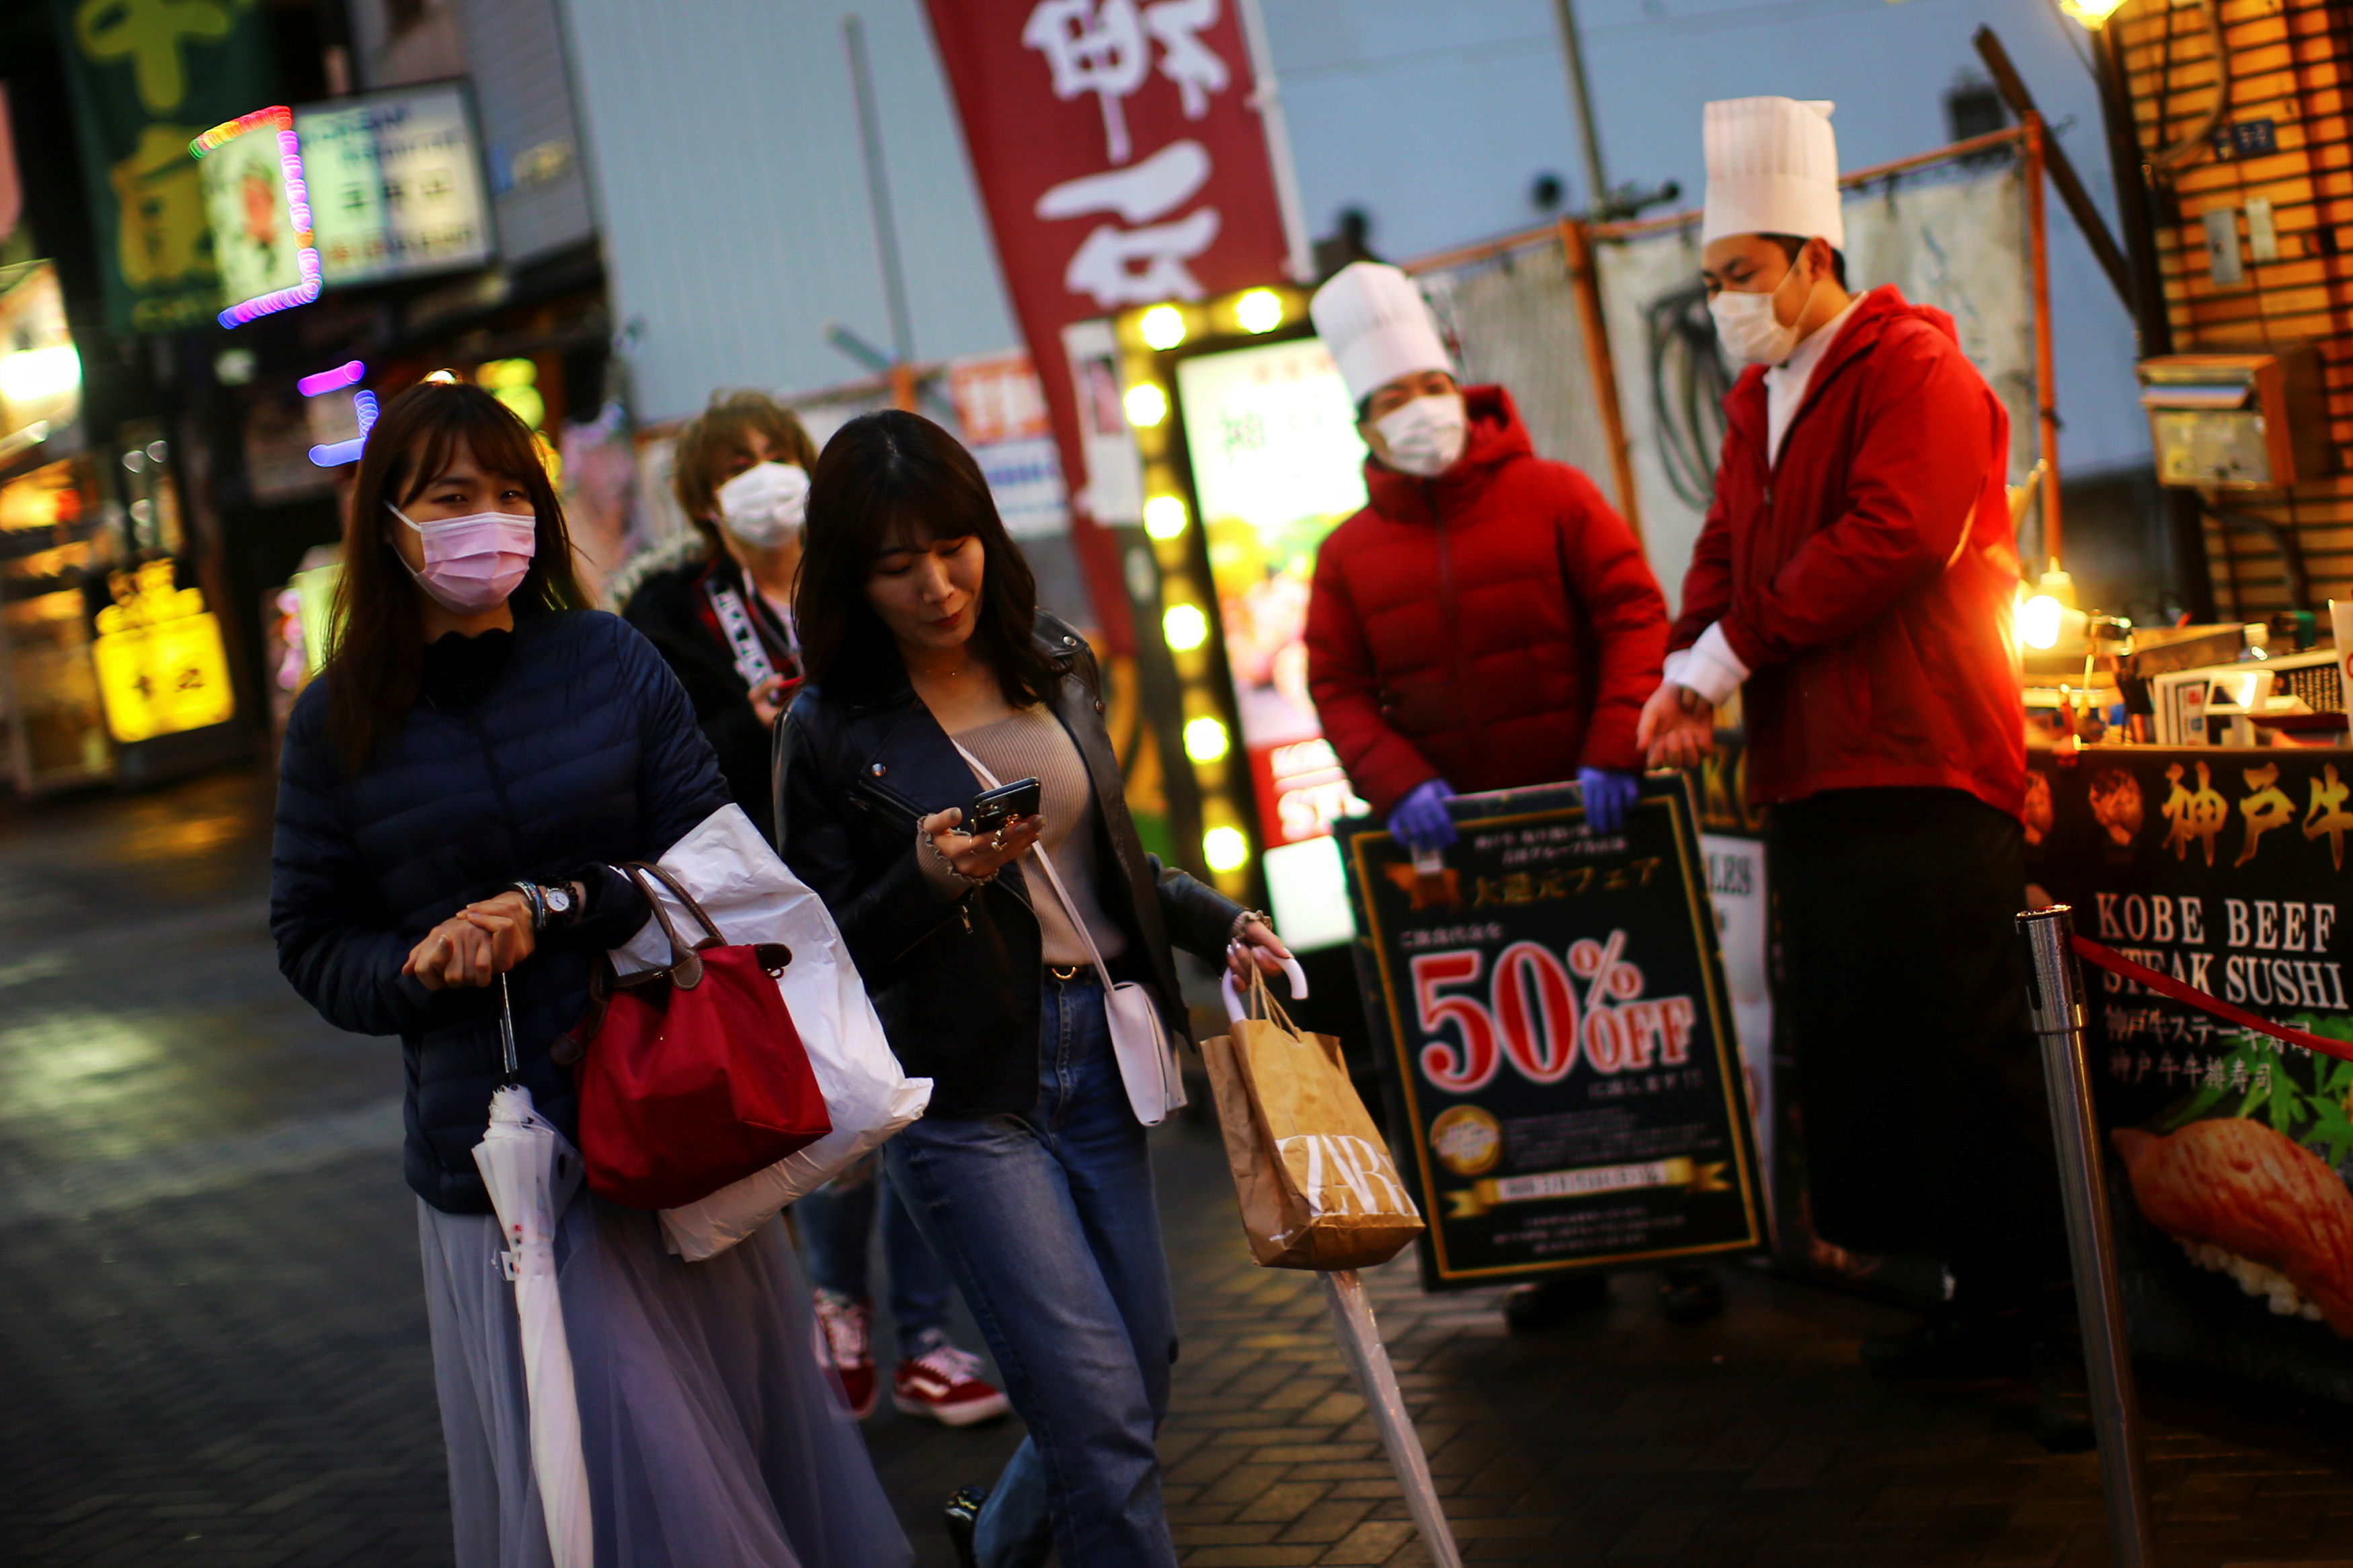 People, wearing protective masks following an outbreak of the coronavirus disease (COVID-19), walk on an almost empty street in the Dotonbori entertainment district of Osaka, Japan, March 14, 2020.   REUTERS/Edgard Garrido